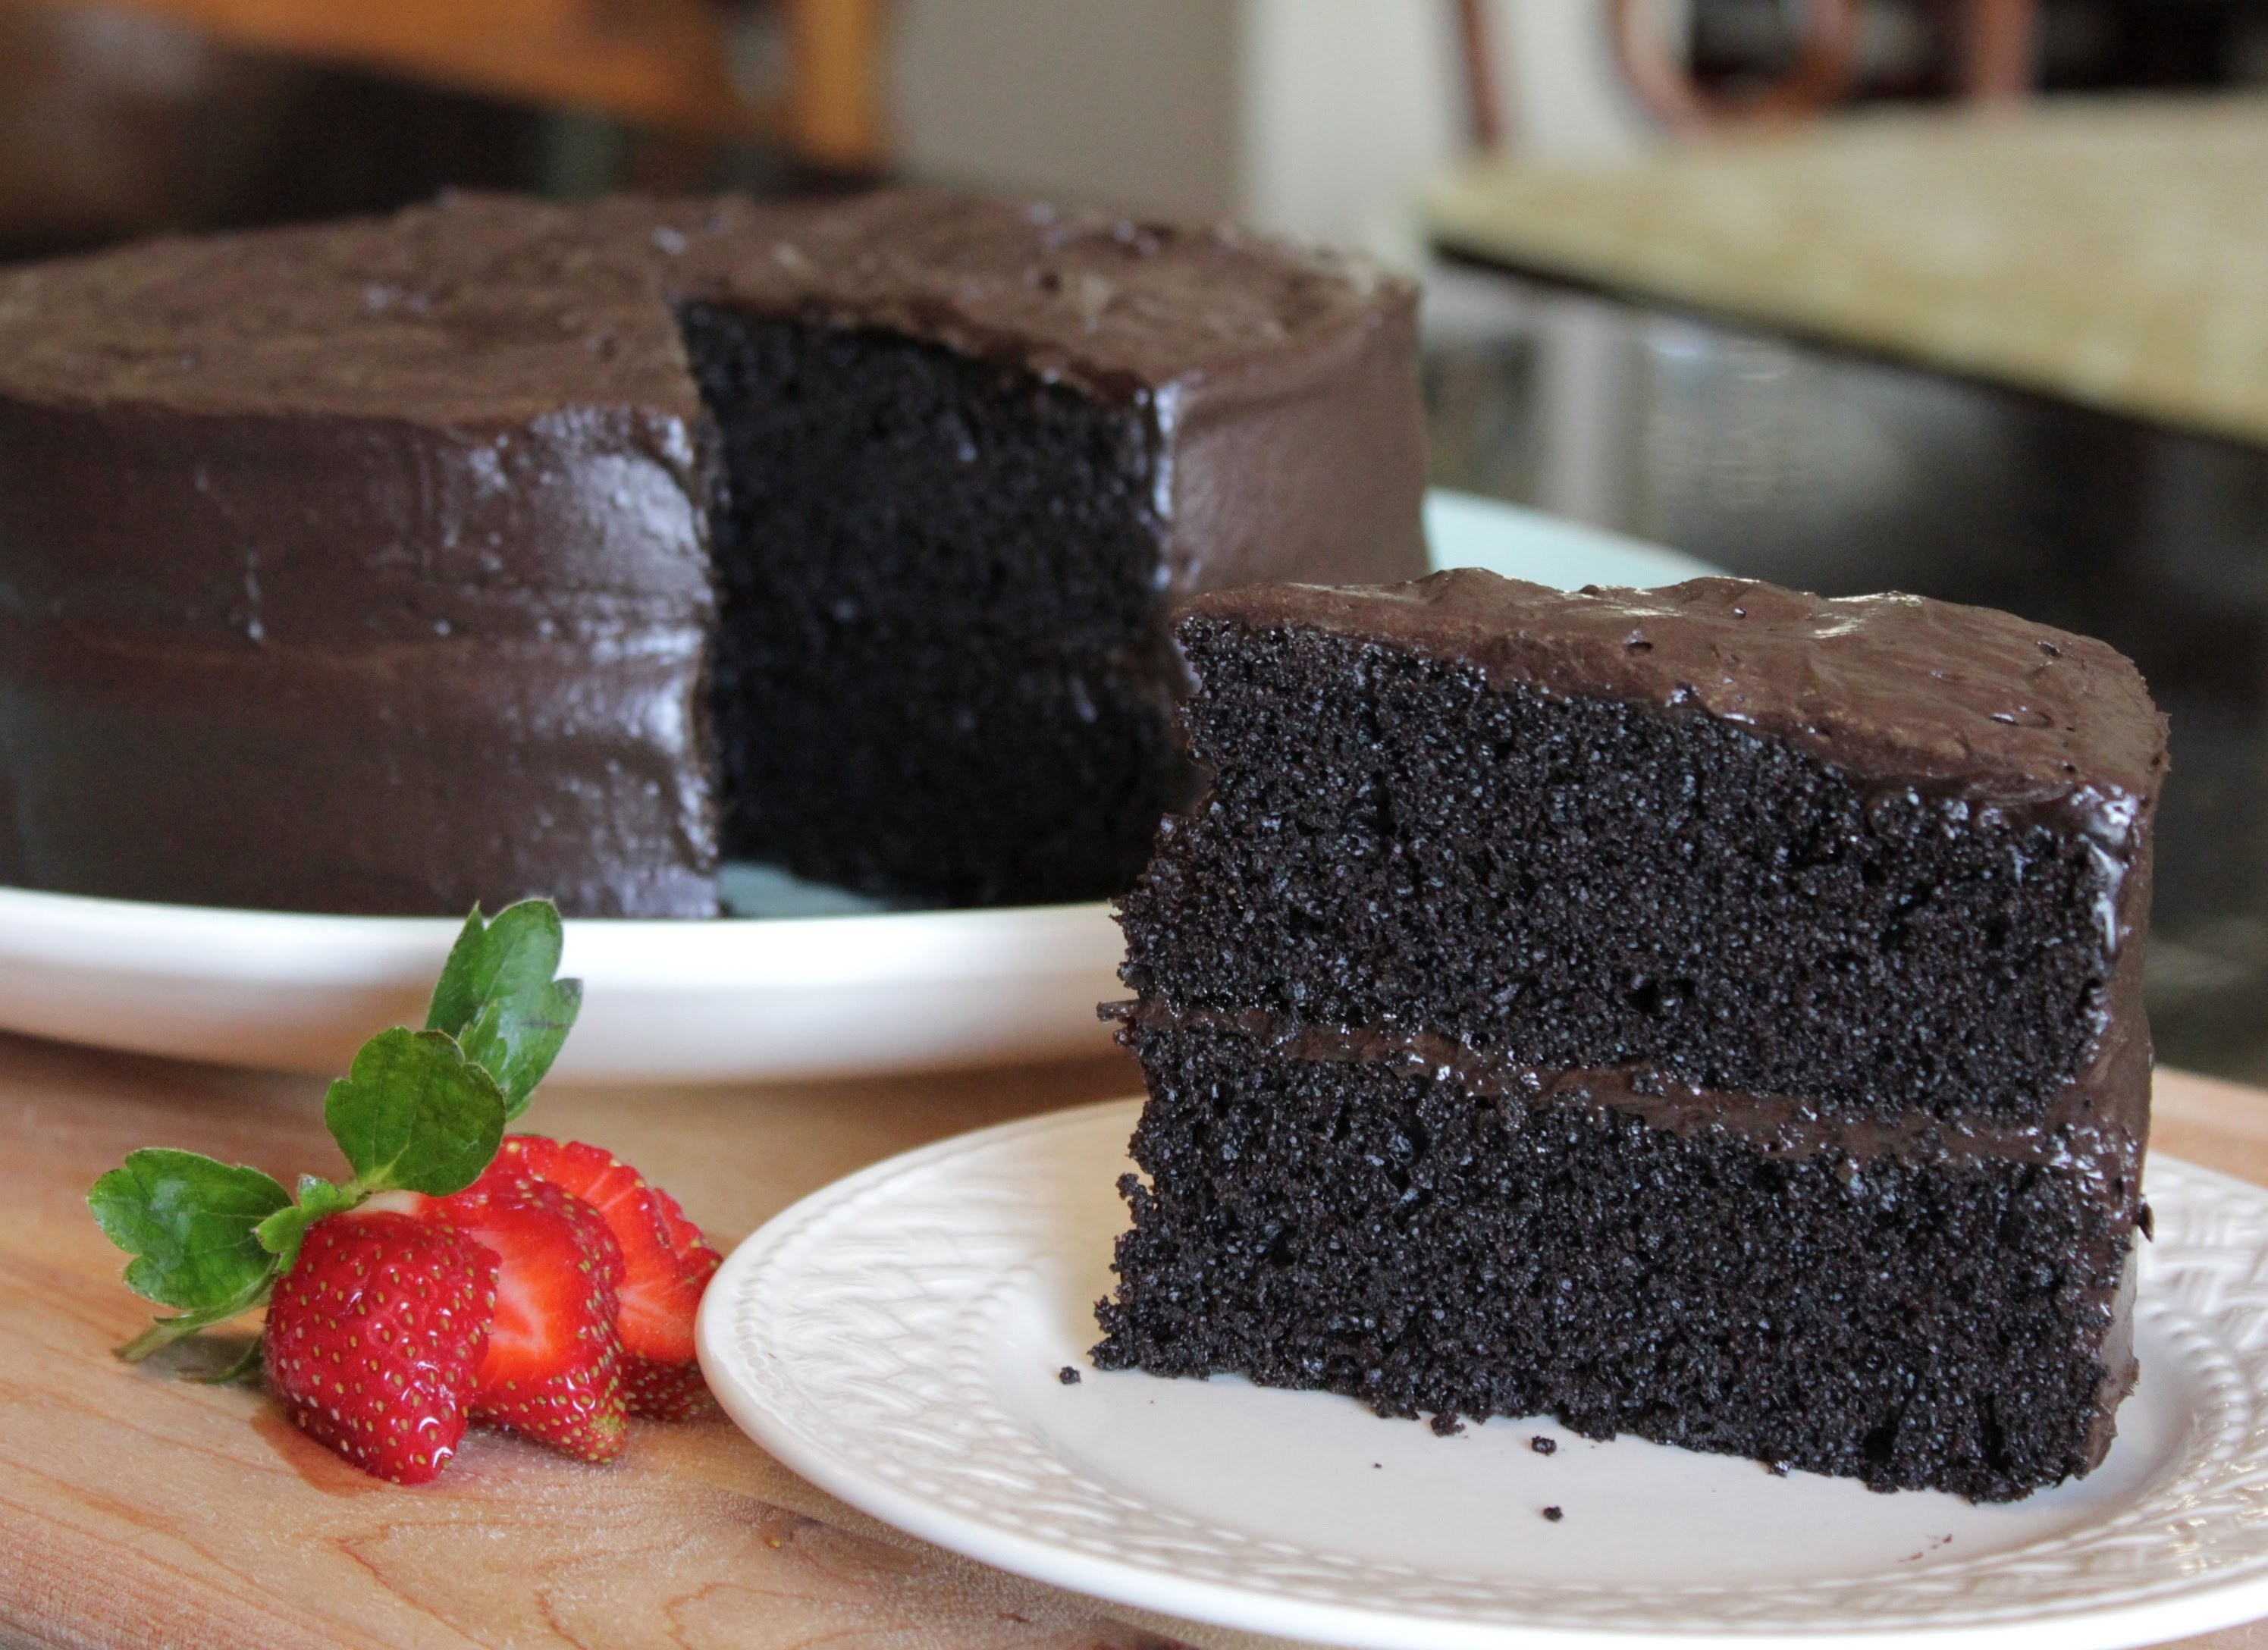 Homemade Delicious Especially Dark Chocolate Cake - The Best Cake Recipe from Hersheys